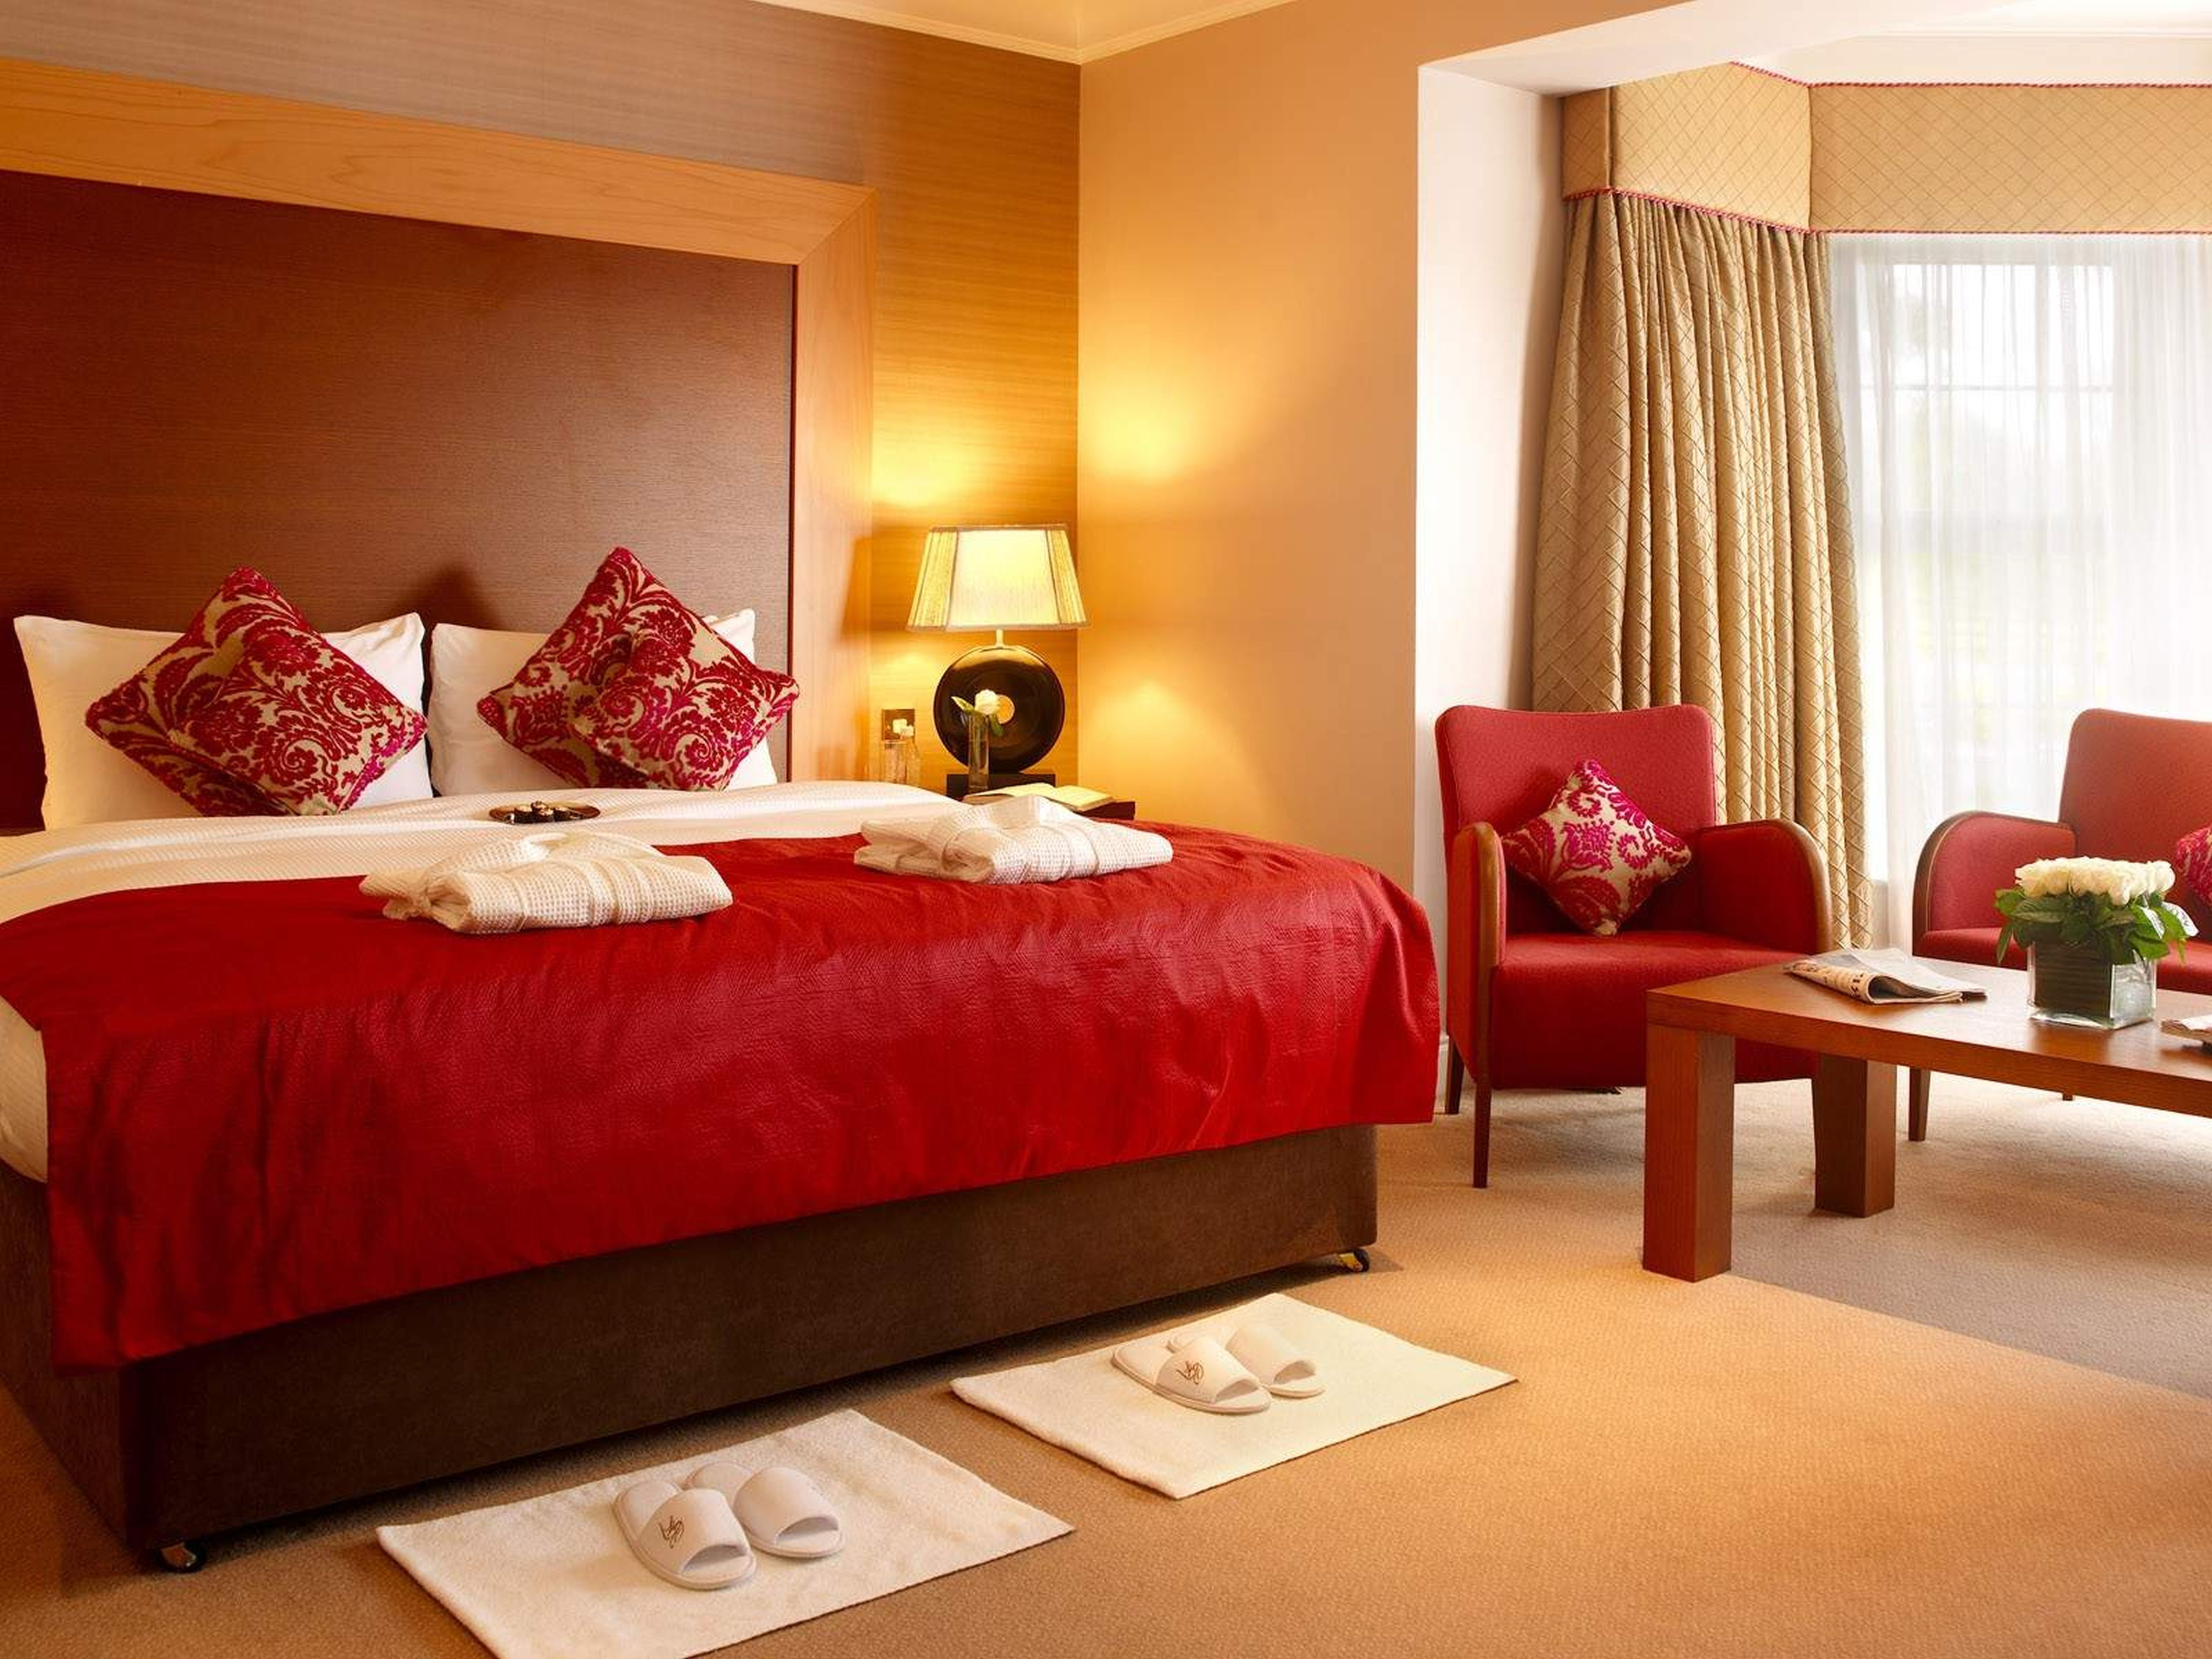 15+ Beautiful Red And Brown Bedroom Ideas | Romantic ...